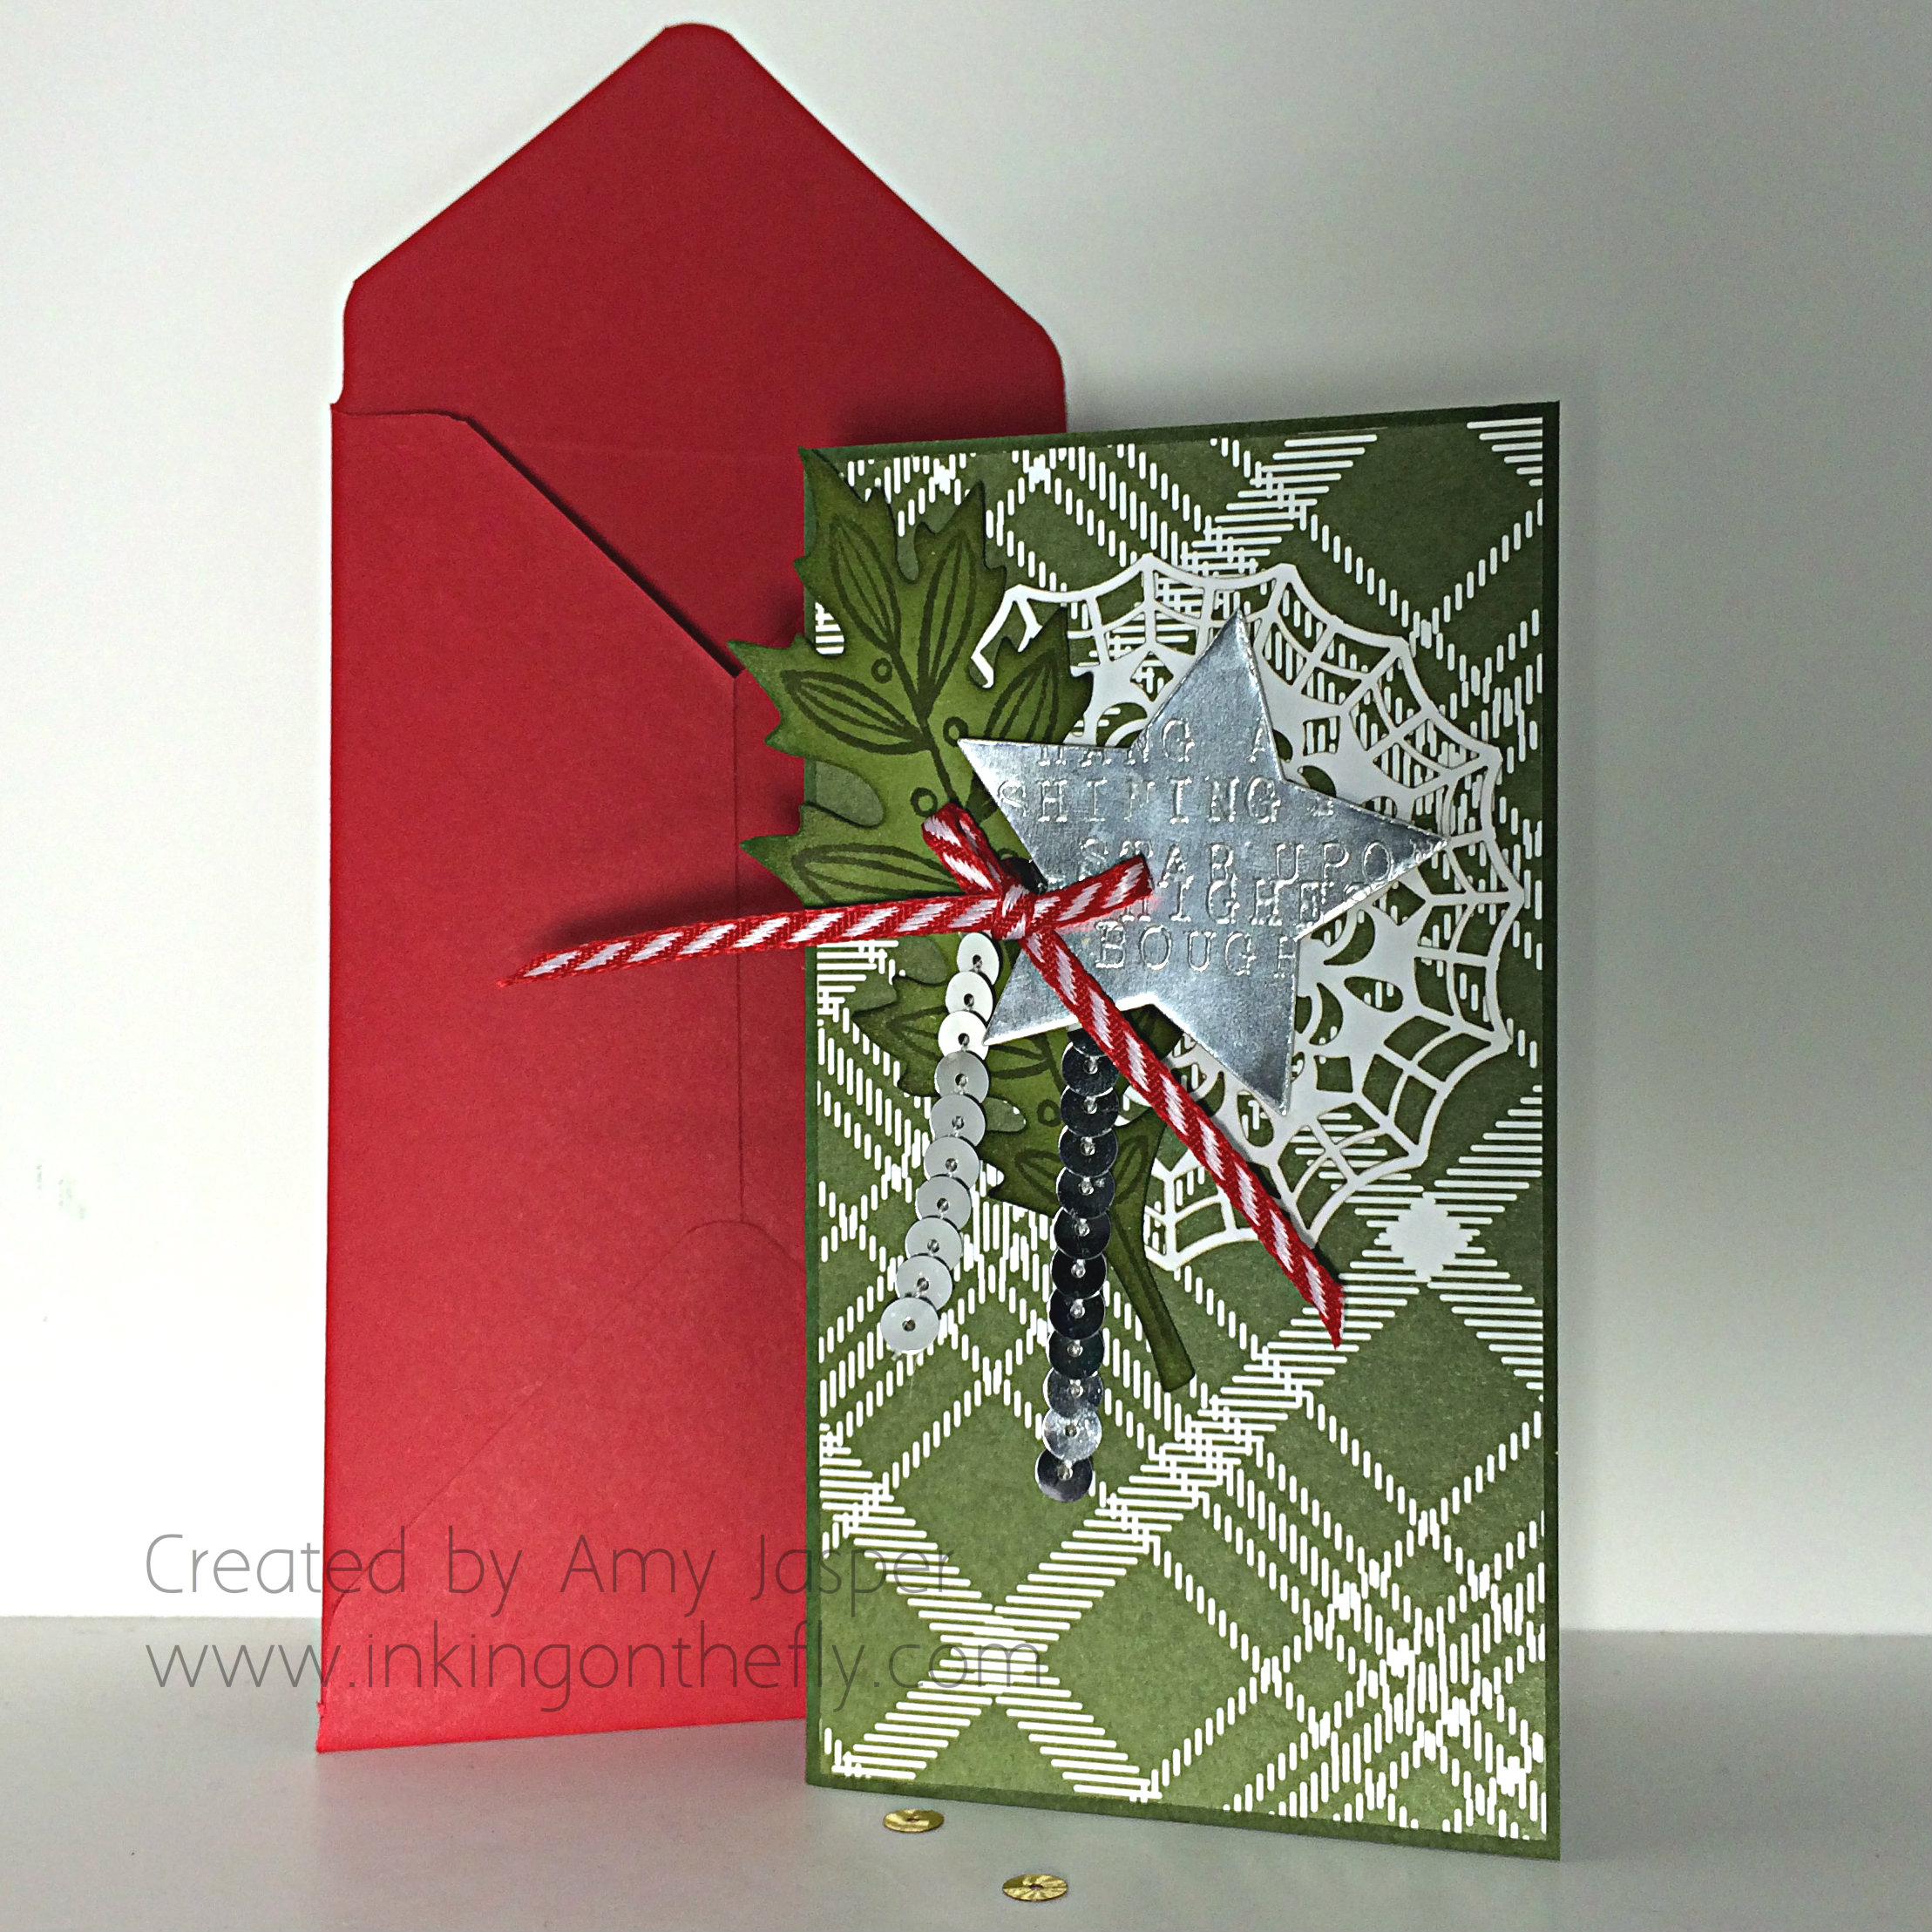 Hang a Shining Star card and envelope by Amy Jasper www.inkingonthefly.com